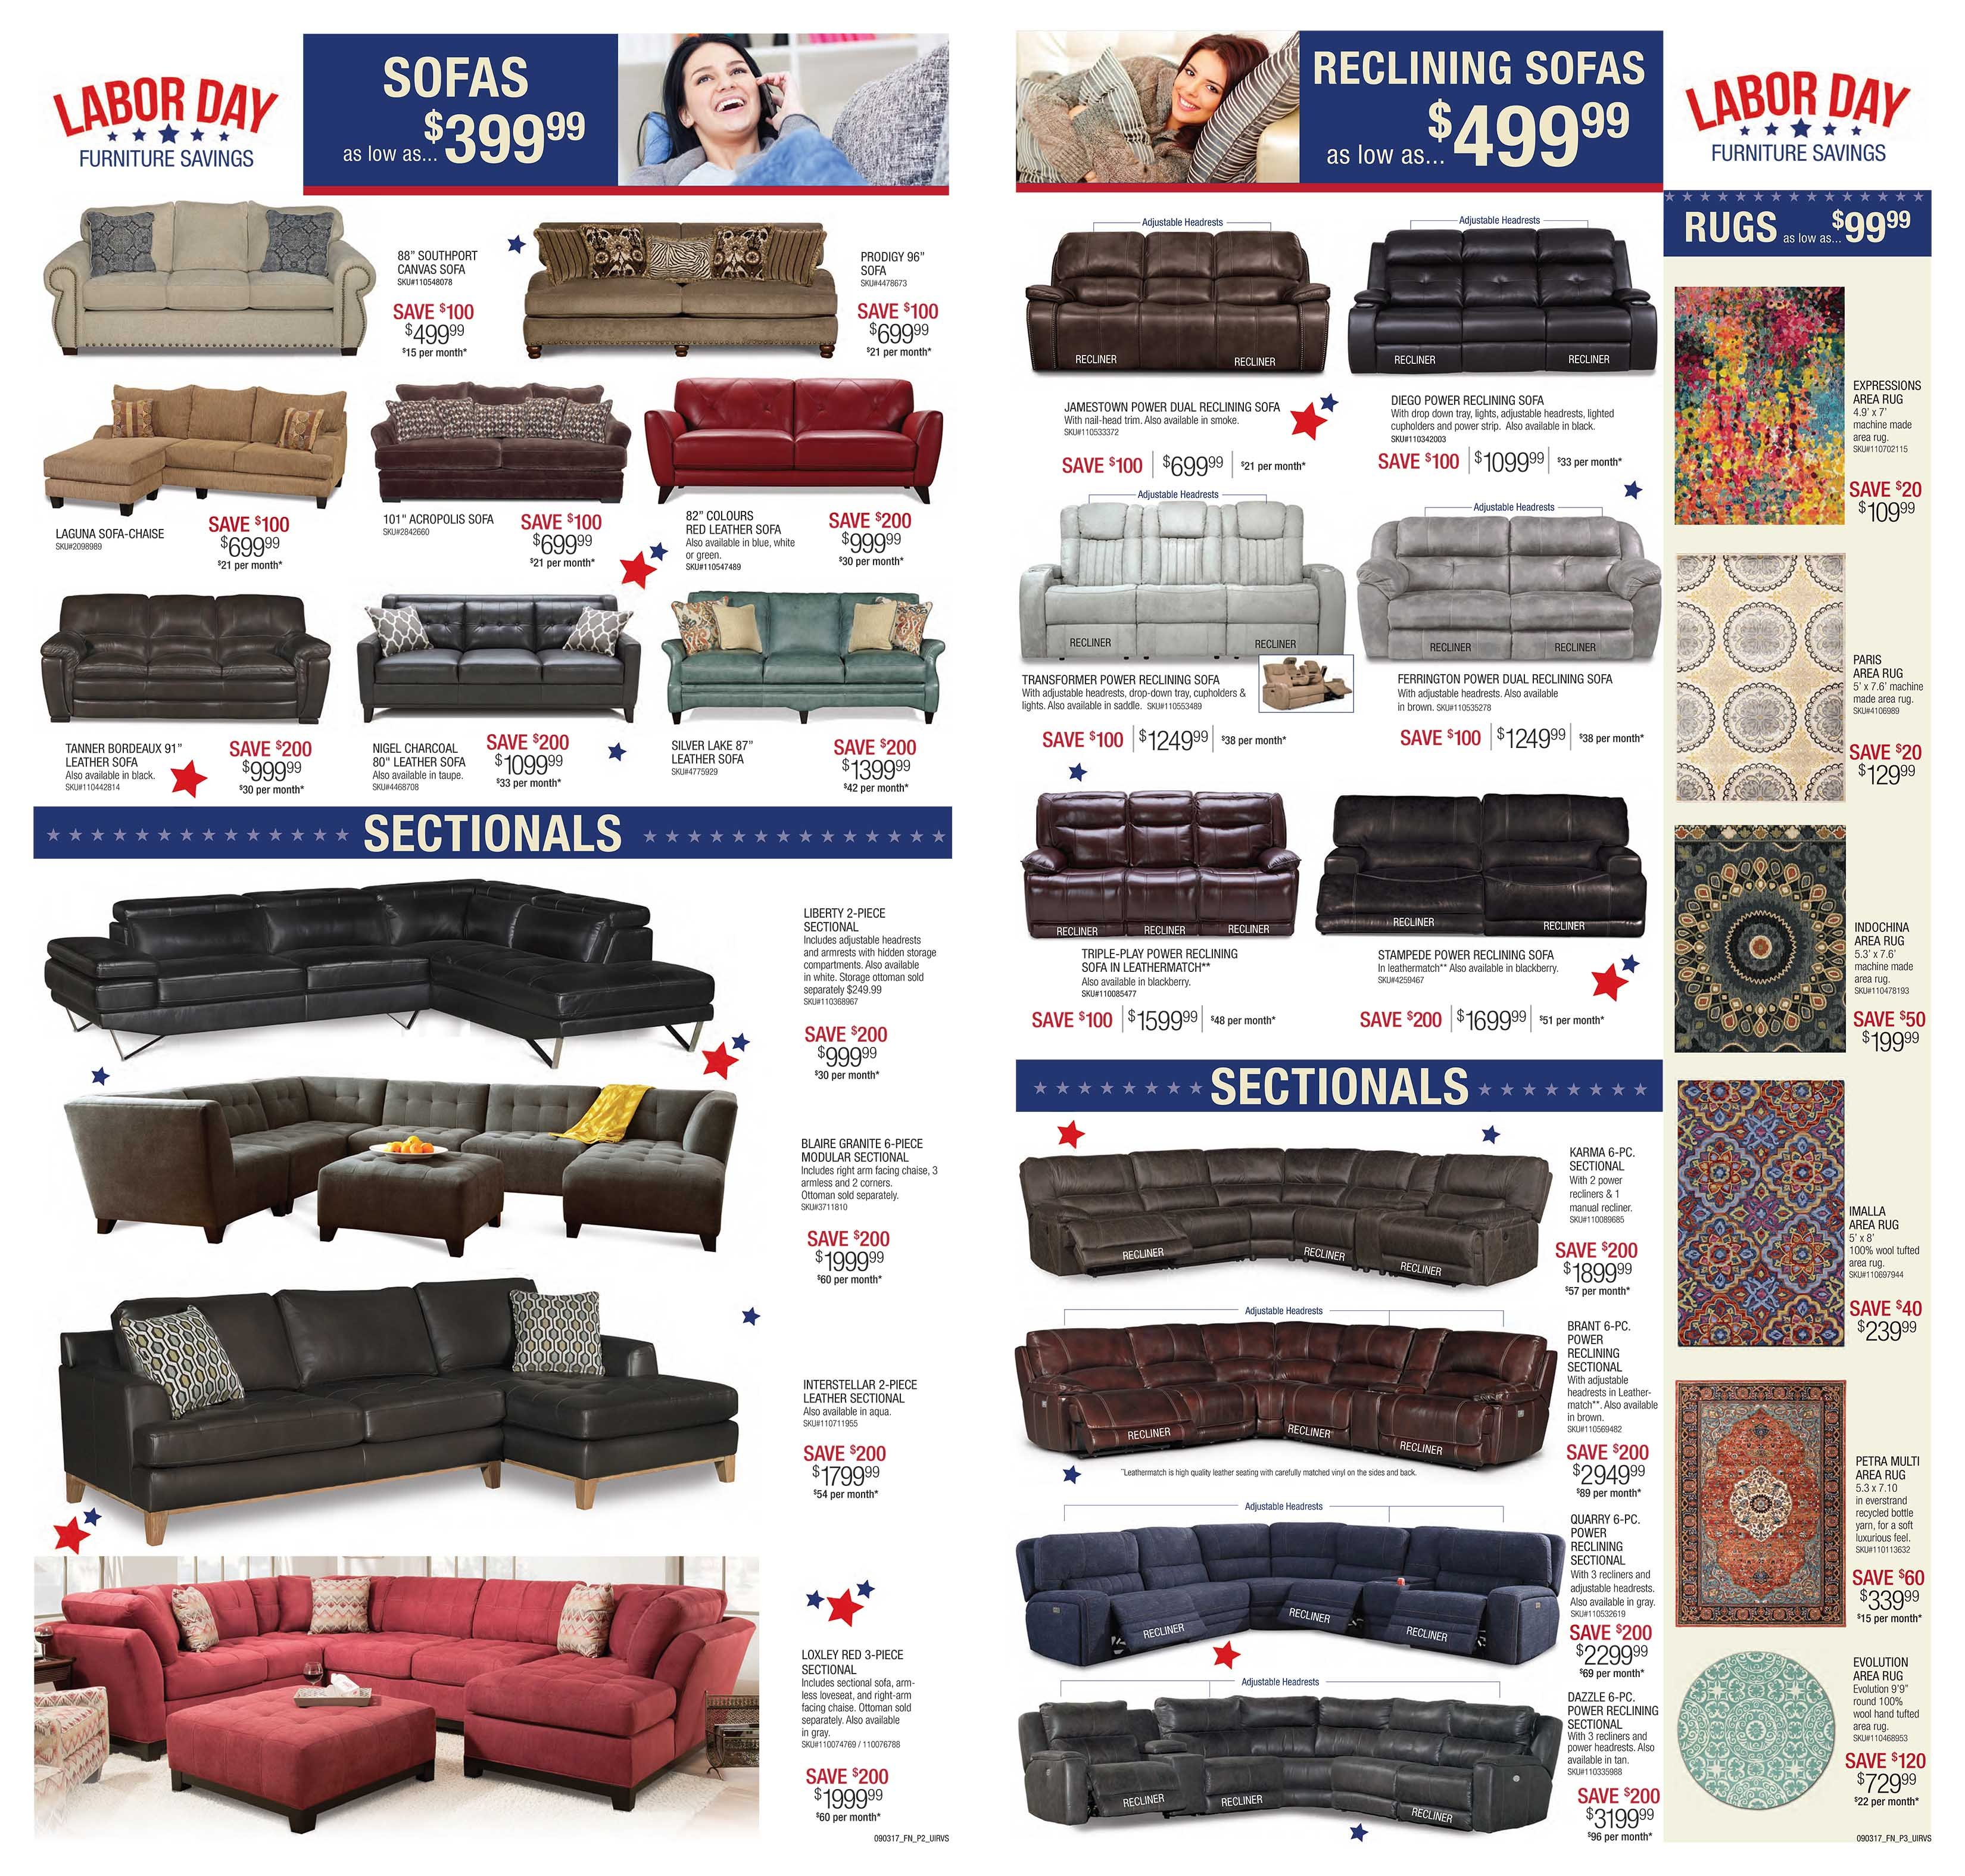 Rc Wiley Reno: Labor Day Sale Home Furnishings Doorbusters!